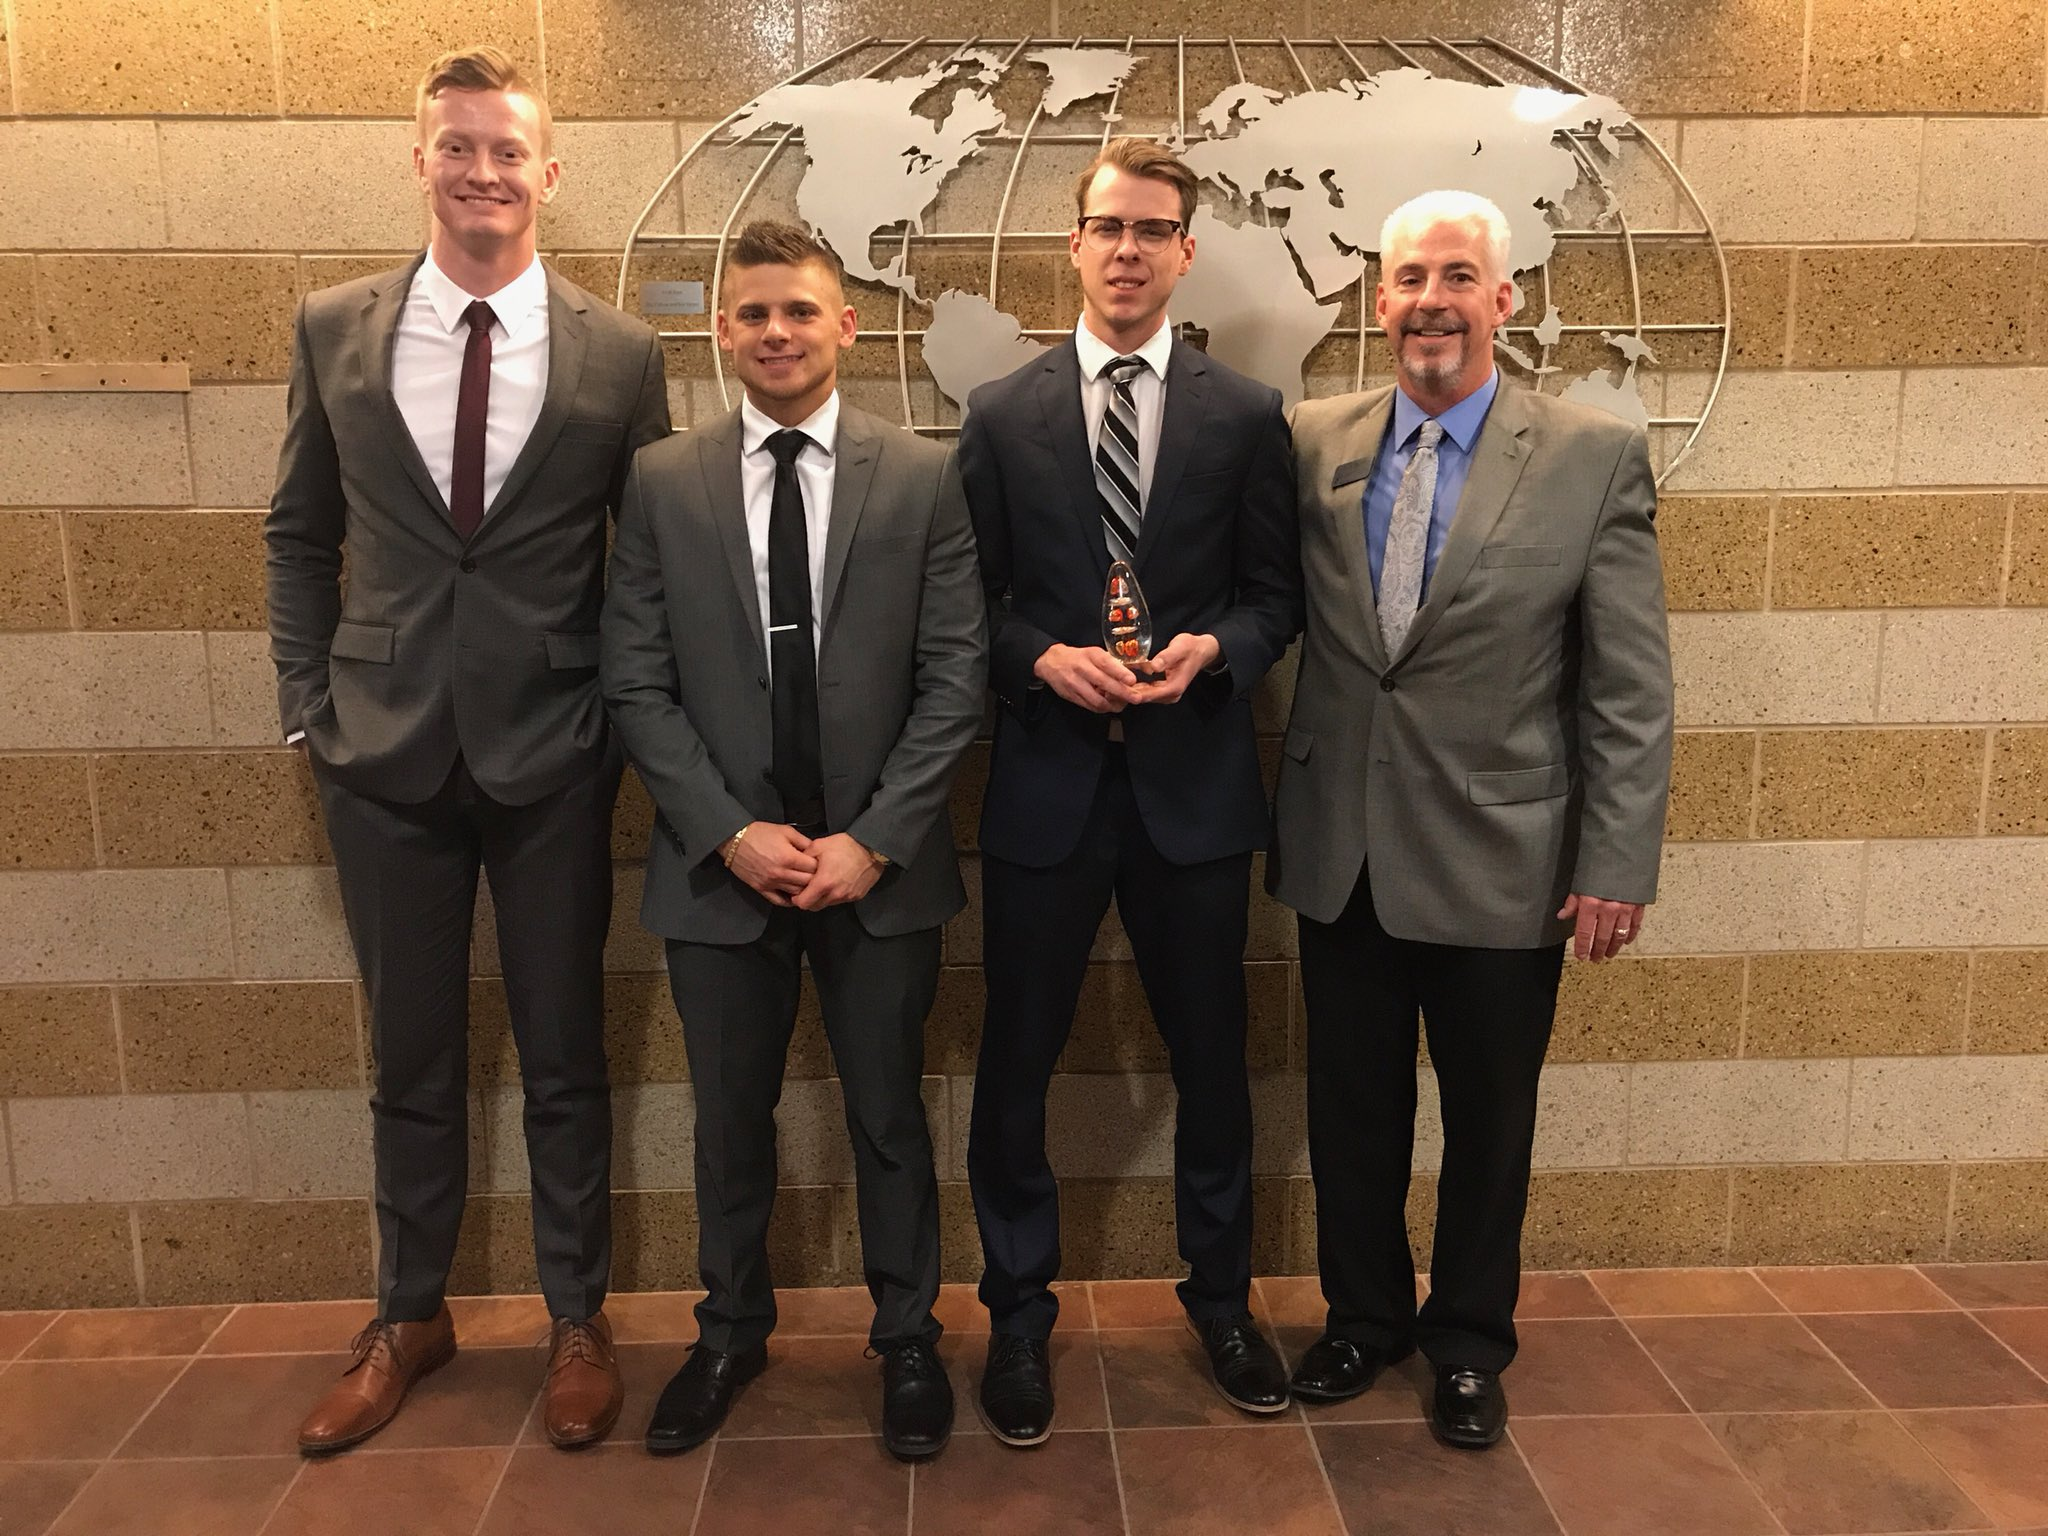 Marketing Students Place 3rd in Sales Competition